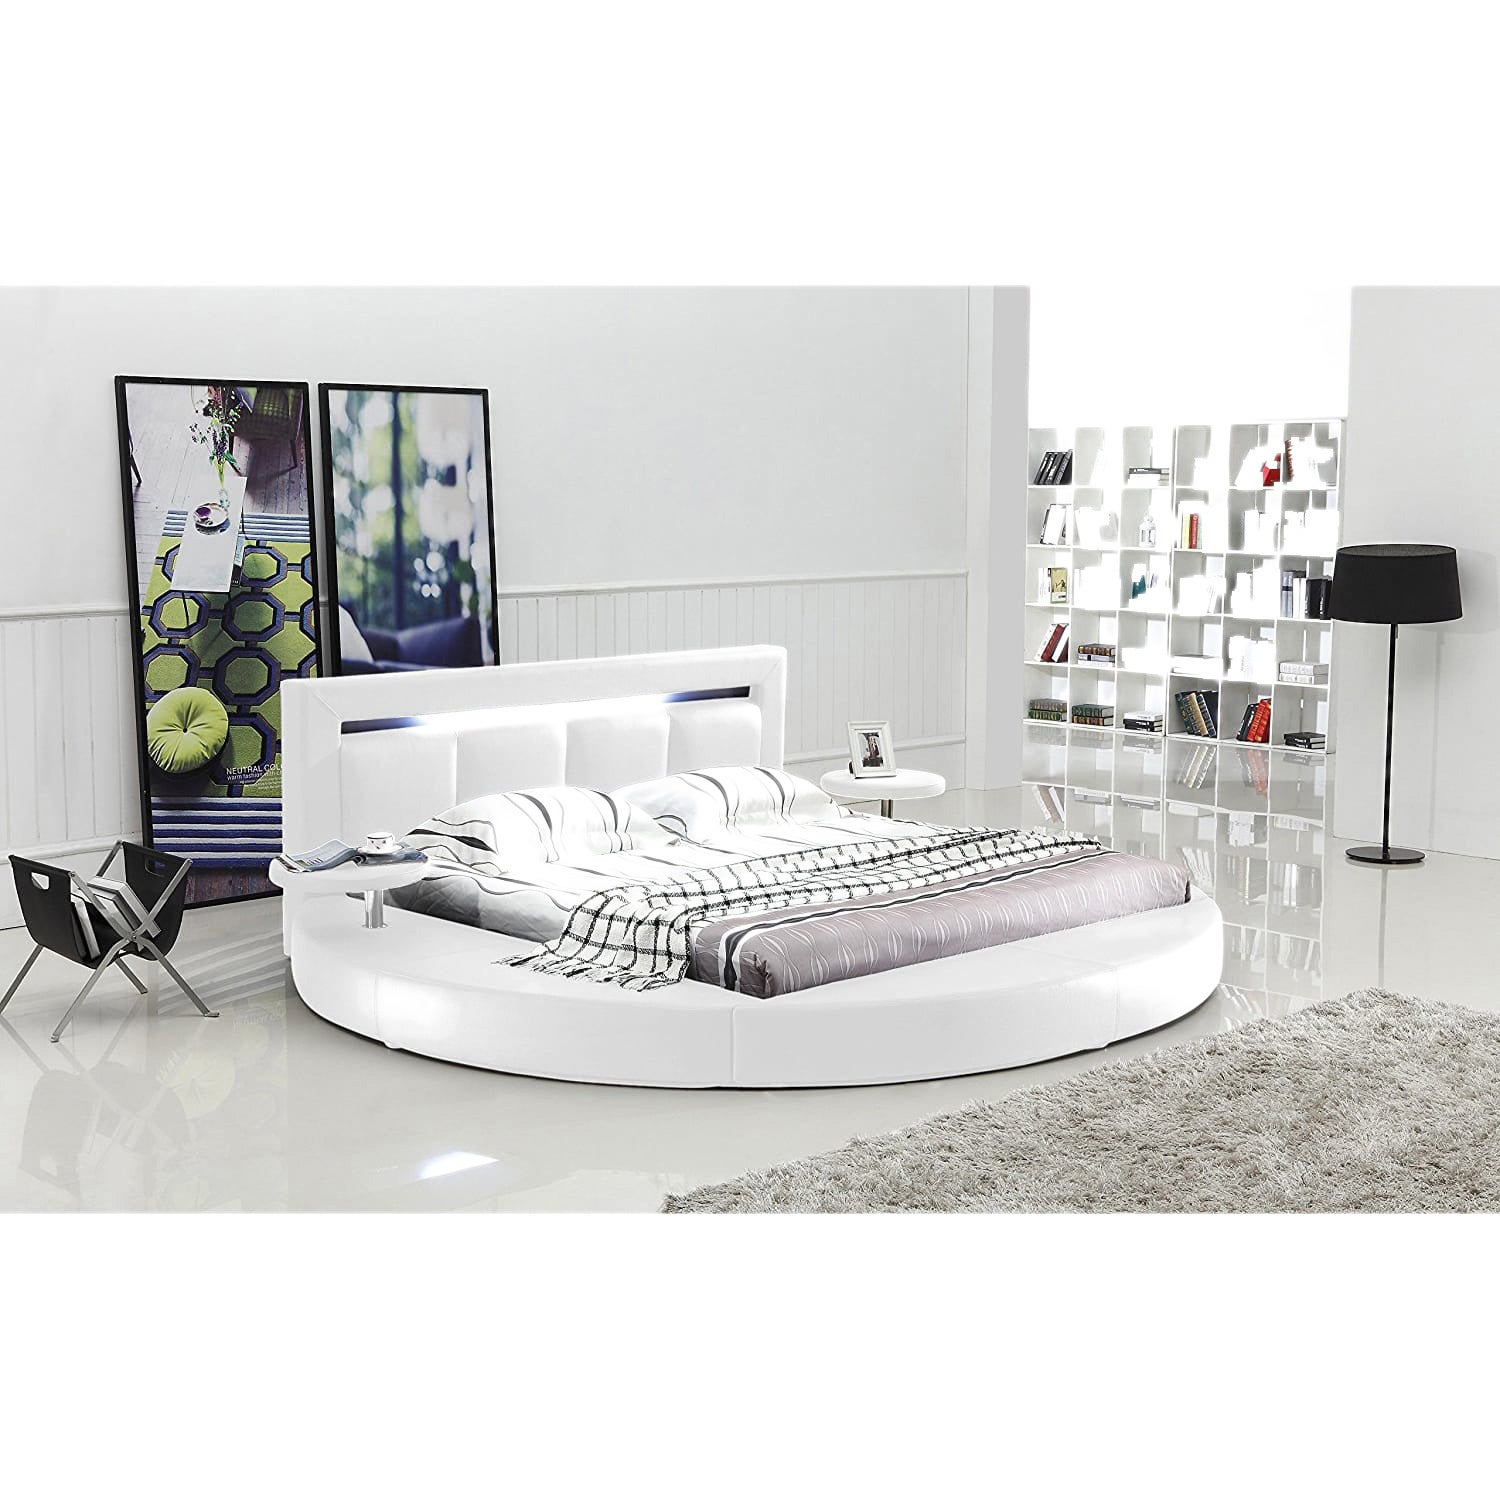 round web black special mattress challenges in circular furniture blog a la having modern what bed makes